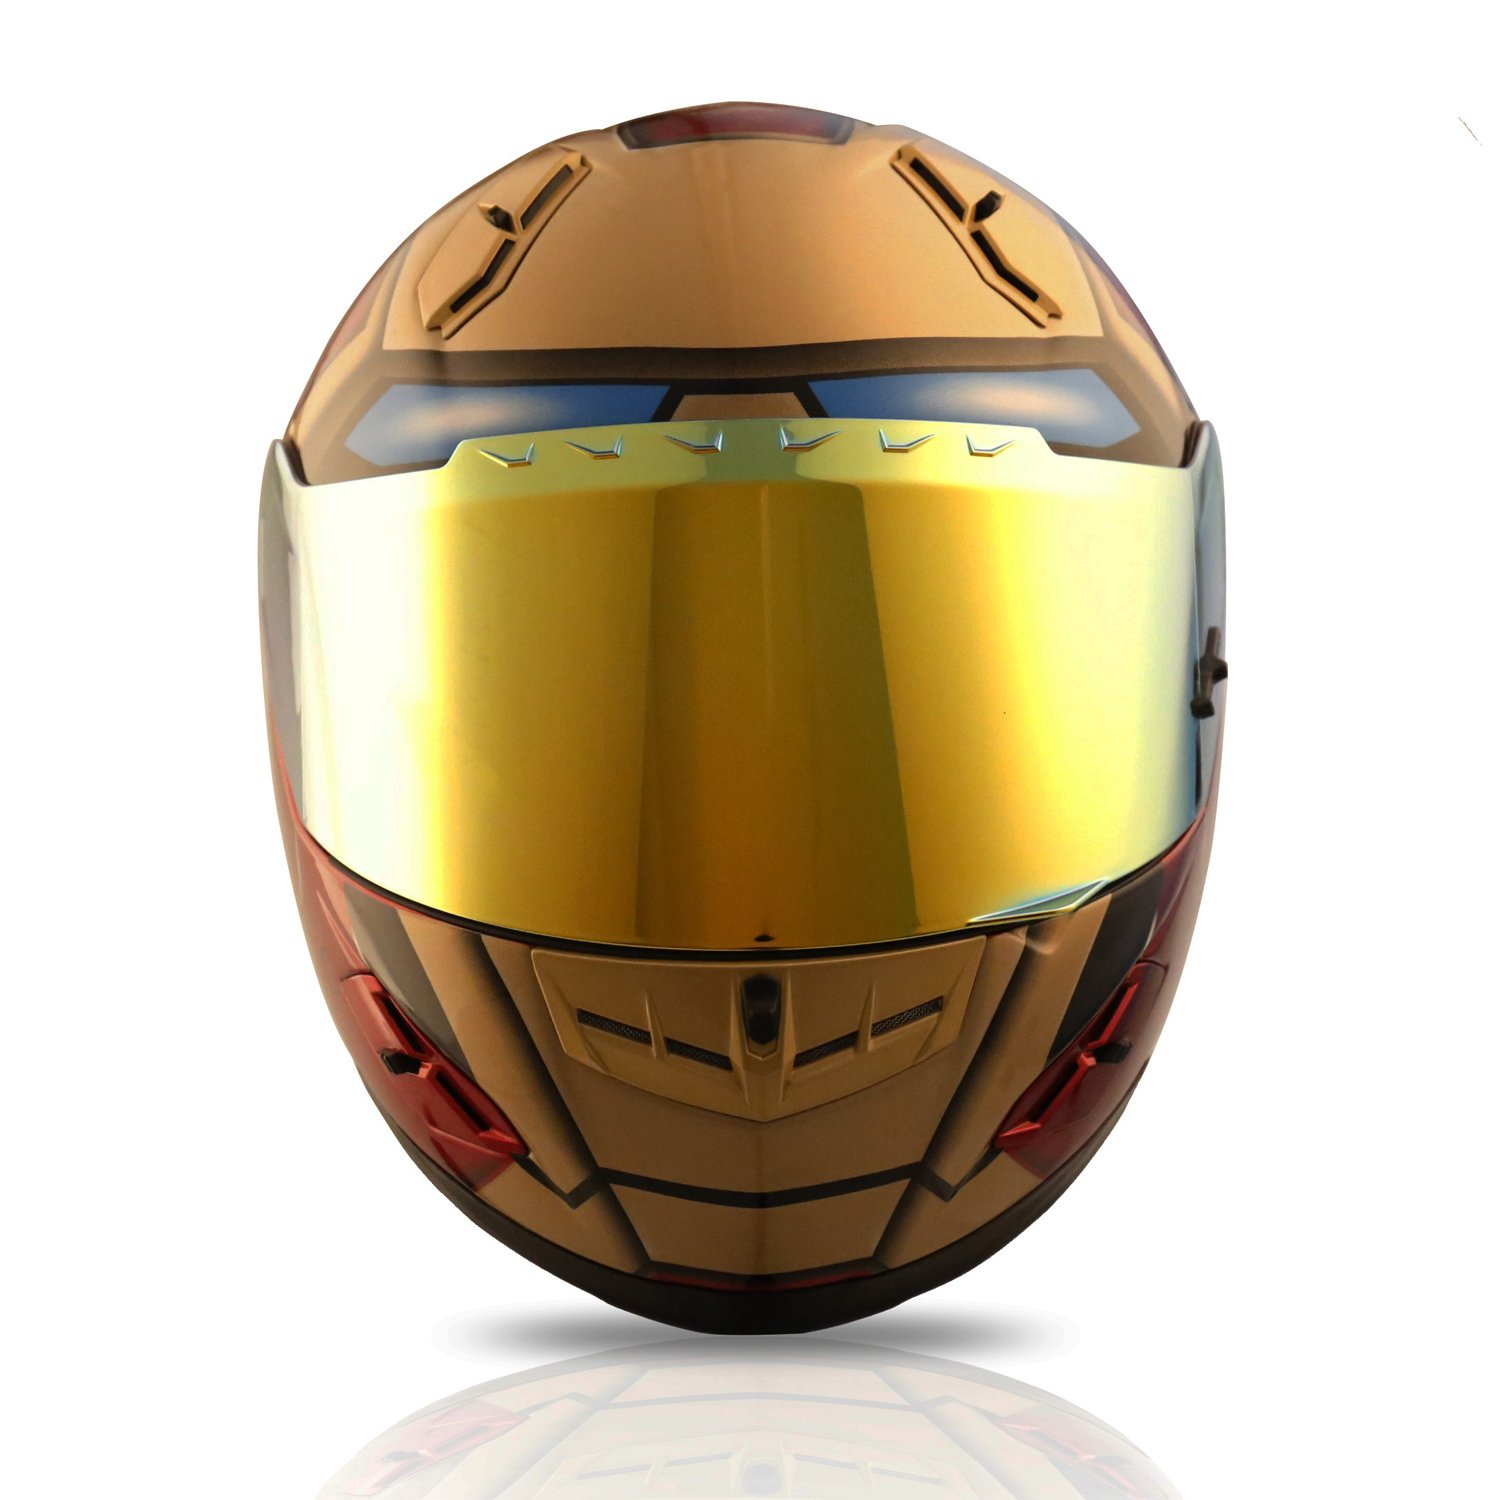 Amazon.com: NENKI NK-856 Full Face Iron Man Motorcycle Helmet For Adult and Youth Street Bike with Iridium Red Visor and Sun Shield DOT Approved (Medium, ...